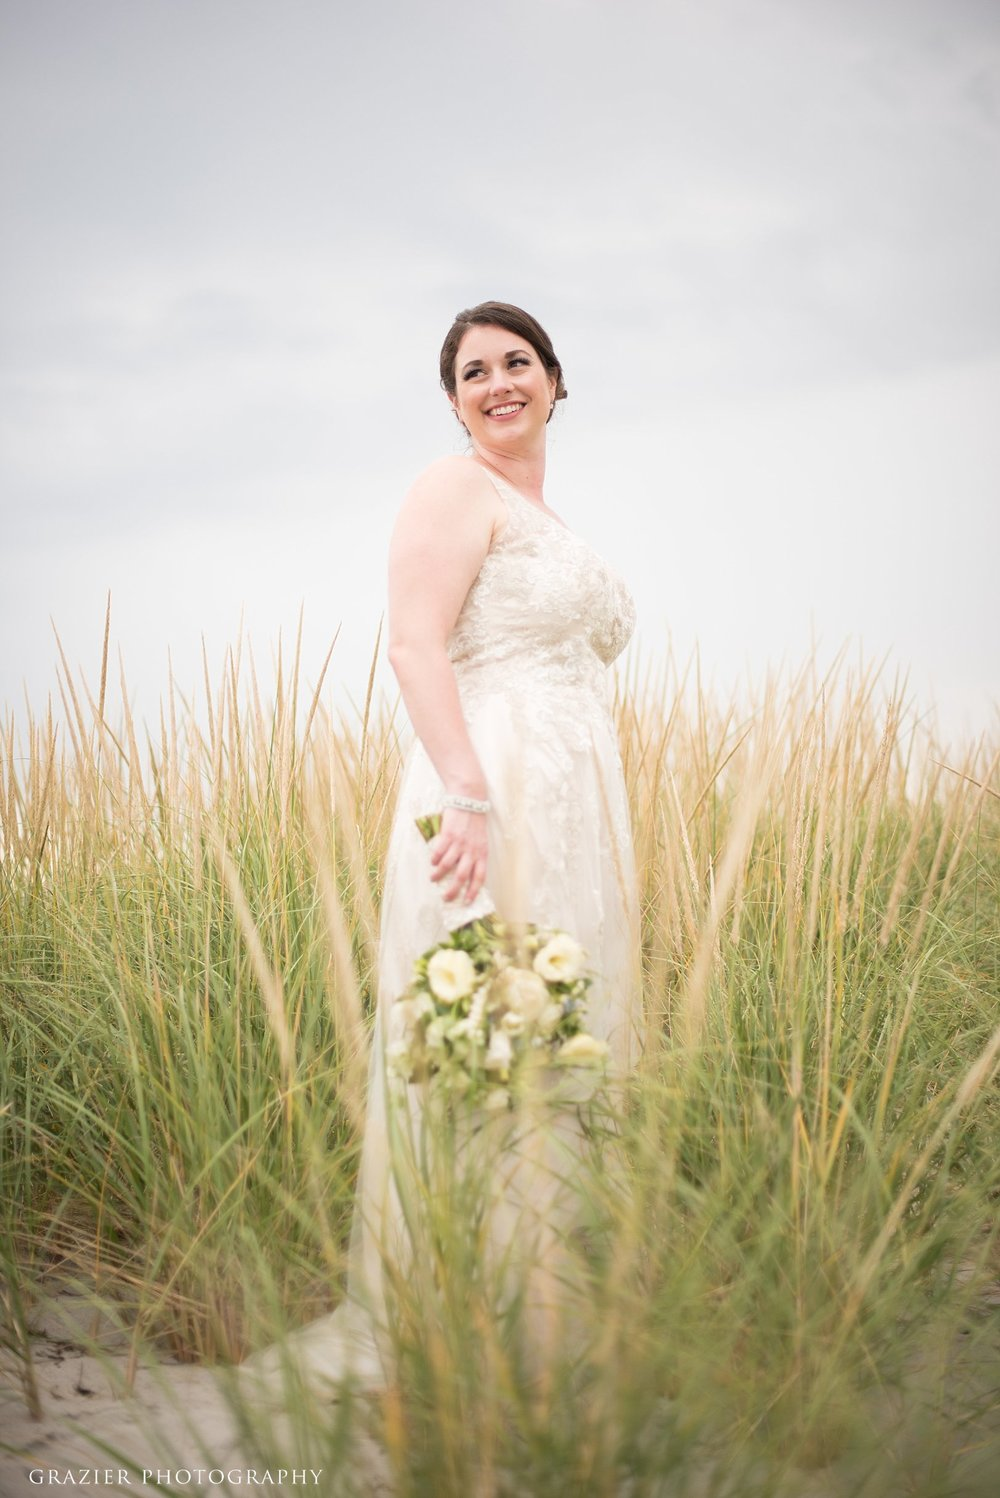 HiddenPondWedding_GrazierPhotography_16_182.JPG